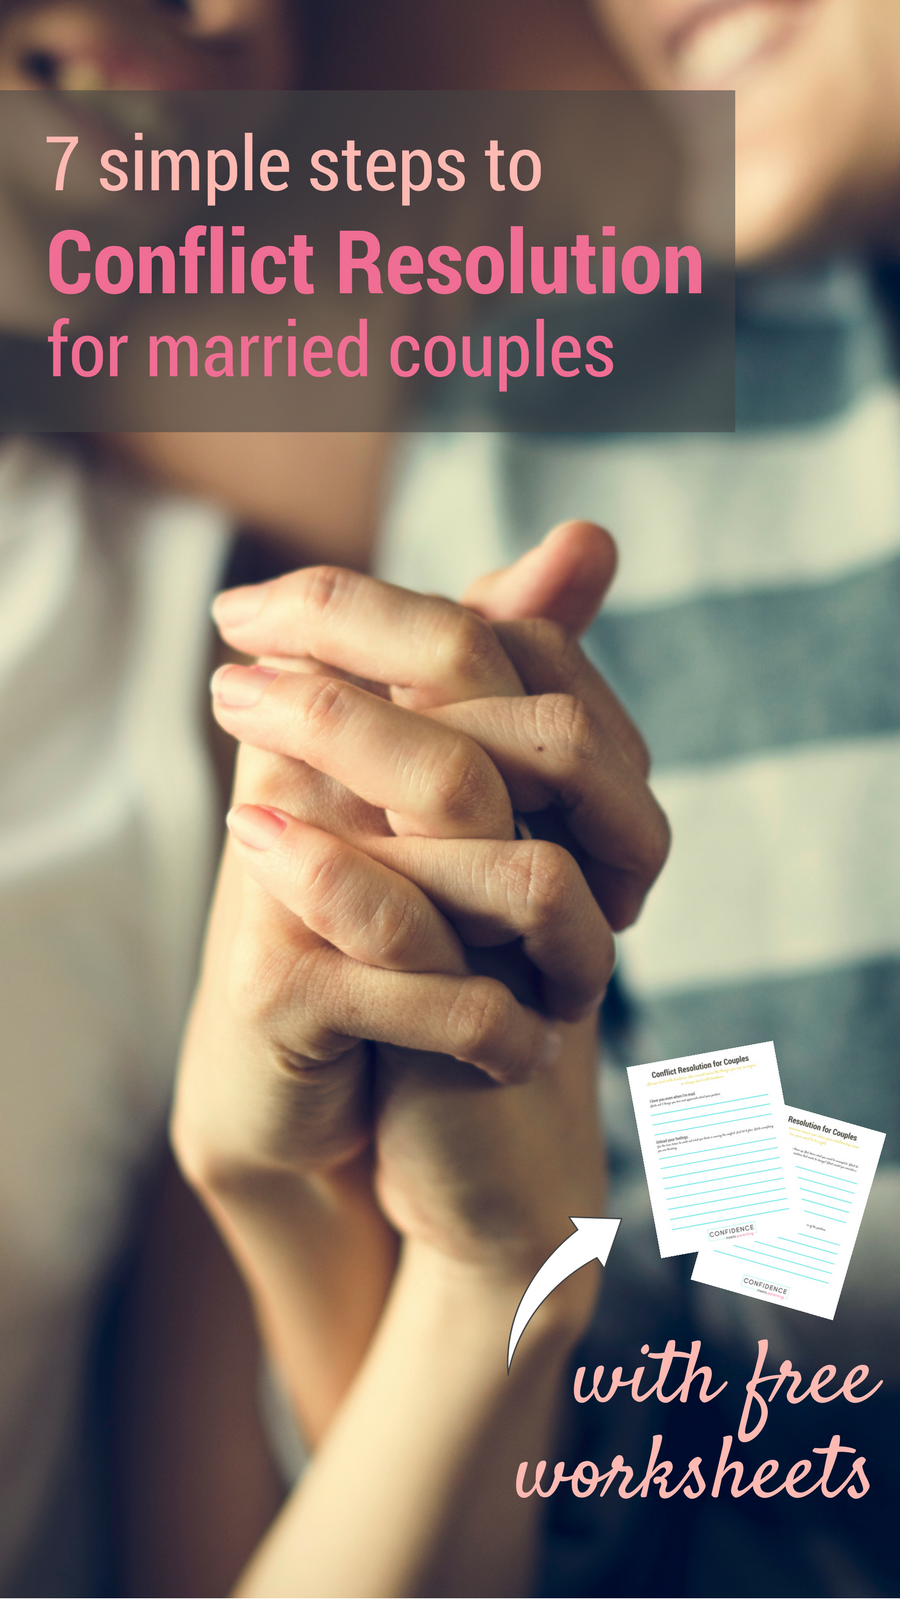 conflict resolution for adults, conflict resolution worksheet, marriage, compromise, marriage advice #marriagegoals #marriage